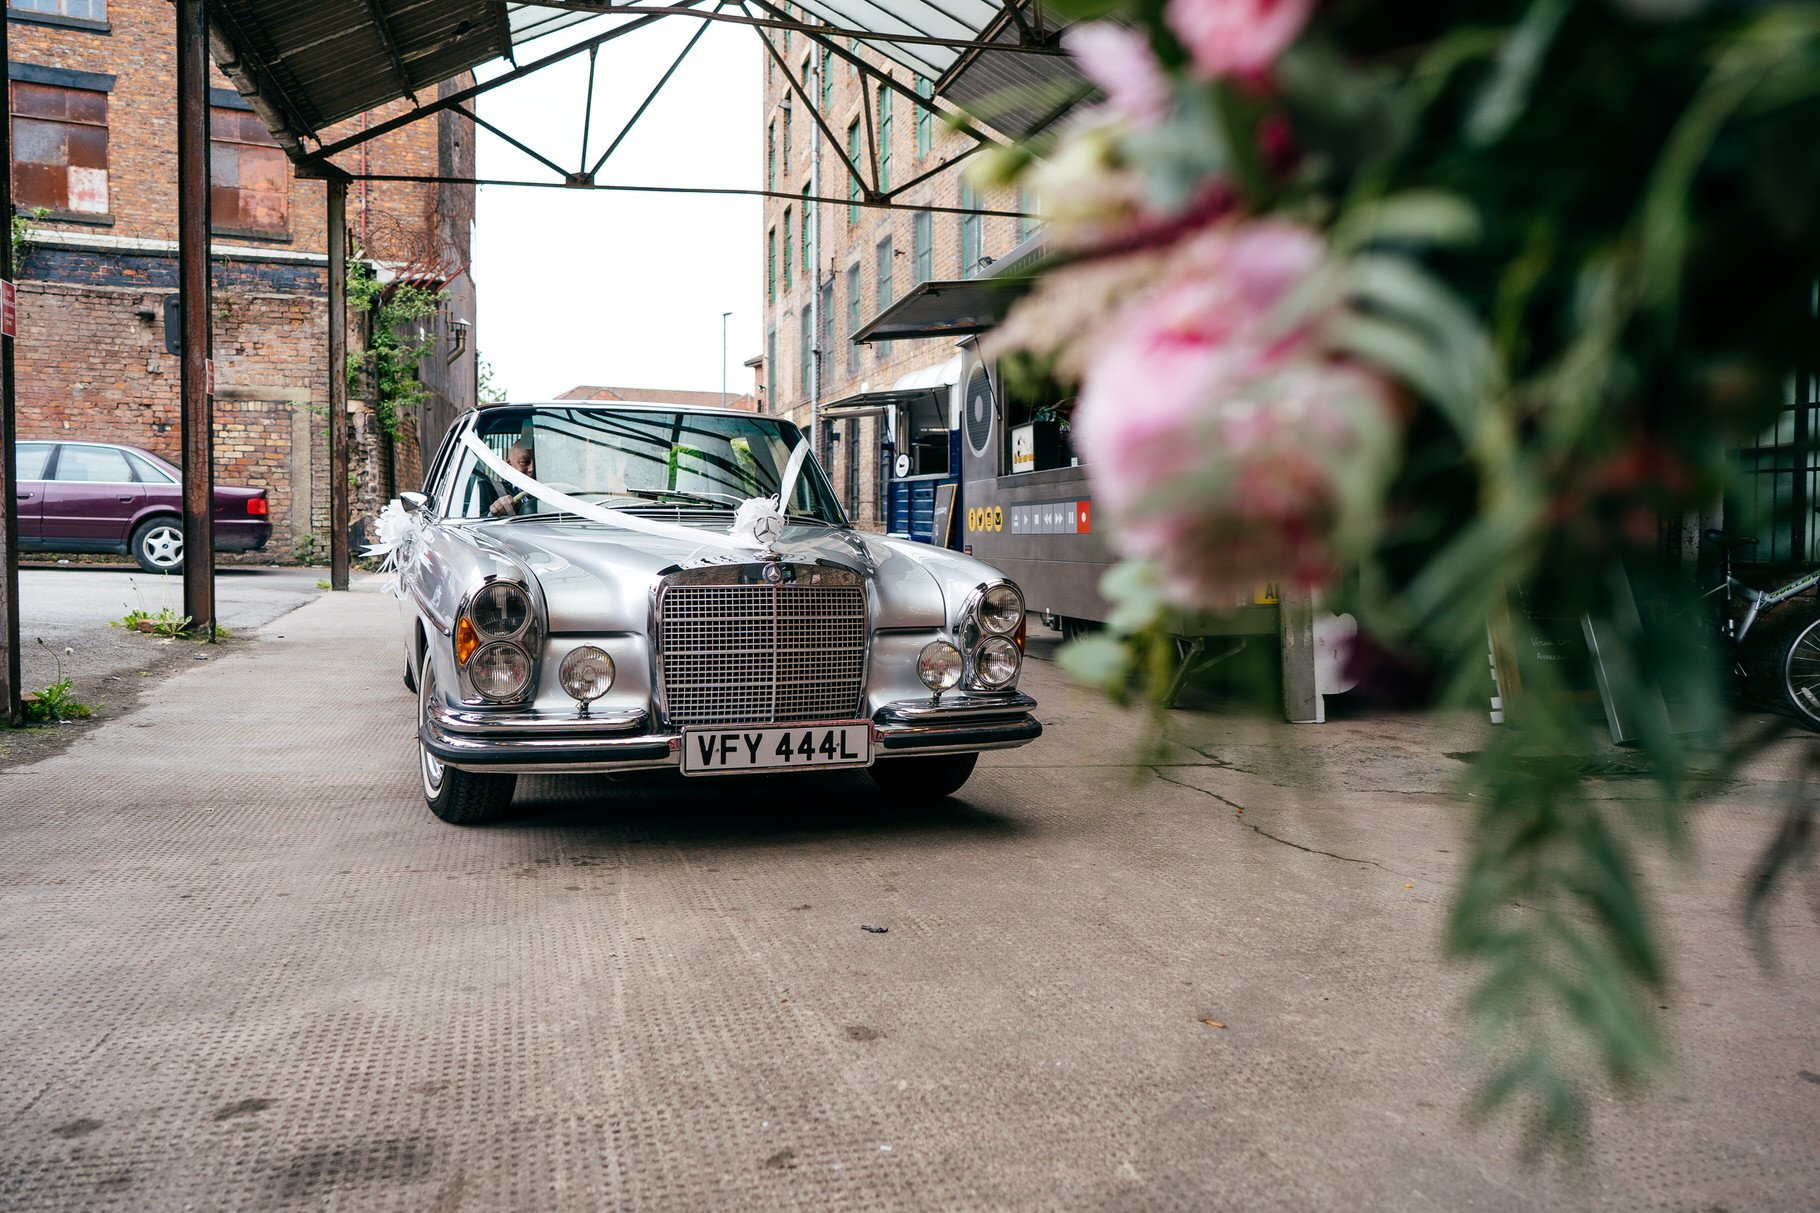 Bride arrives in Rolls Royce car to Hope Mill Theatre Wedding